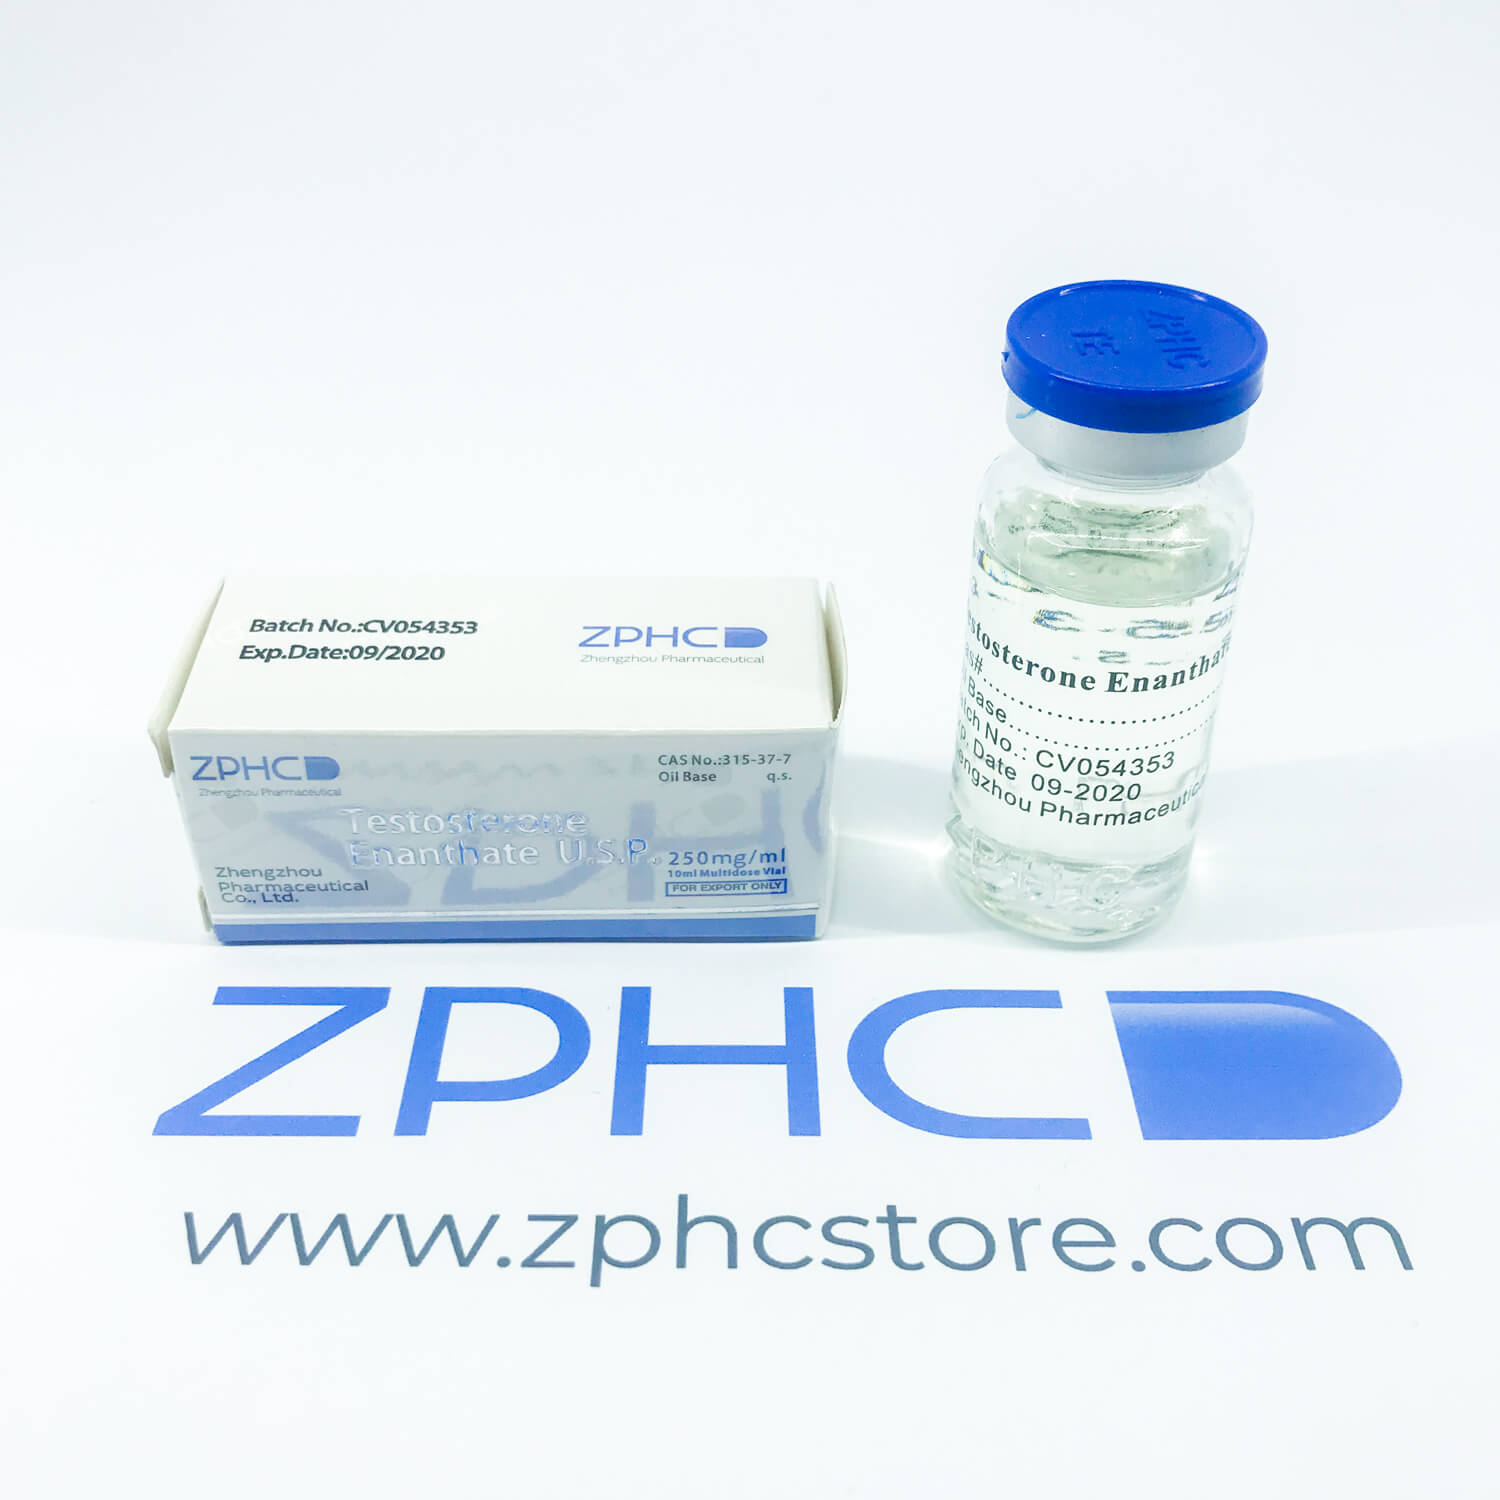 Testosterone Enanthate 250mg/ml ZPHC